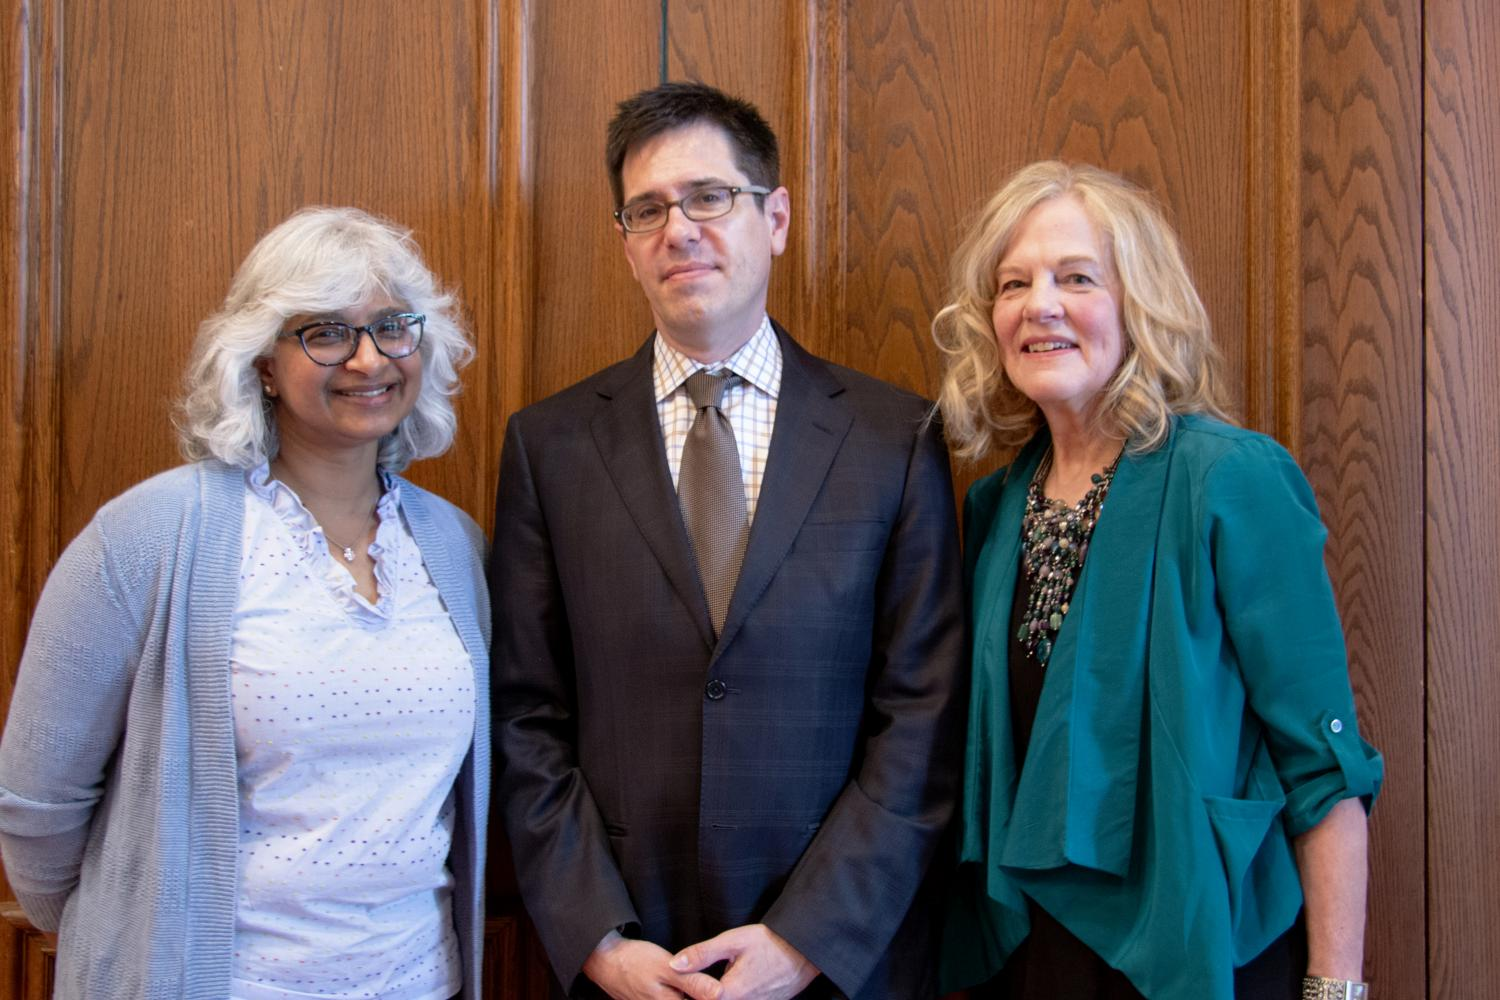 (L to R) Outgoing KAM Council President Lisa Kocheril, Museum Director Jon Seydl, Incoming KAM Council President Sharon Williams. Photo by Julia Nucci Kelly, 2019.